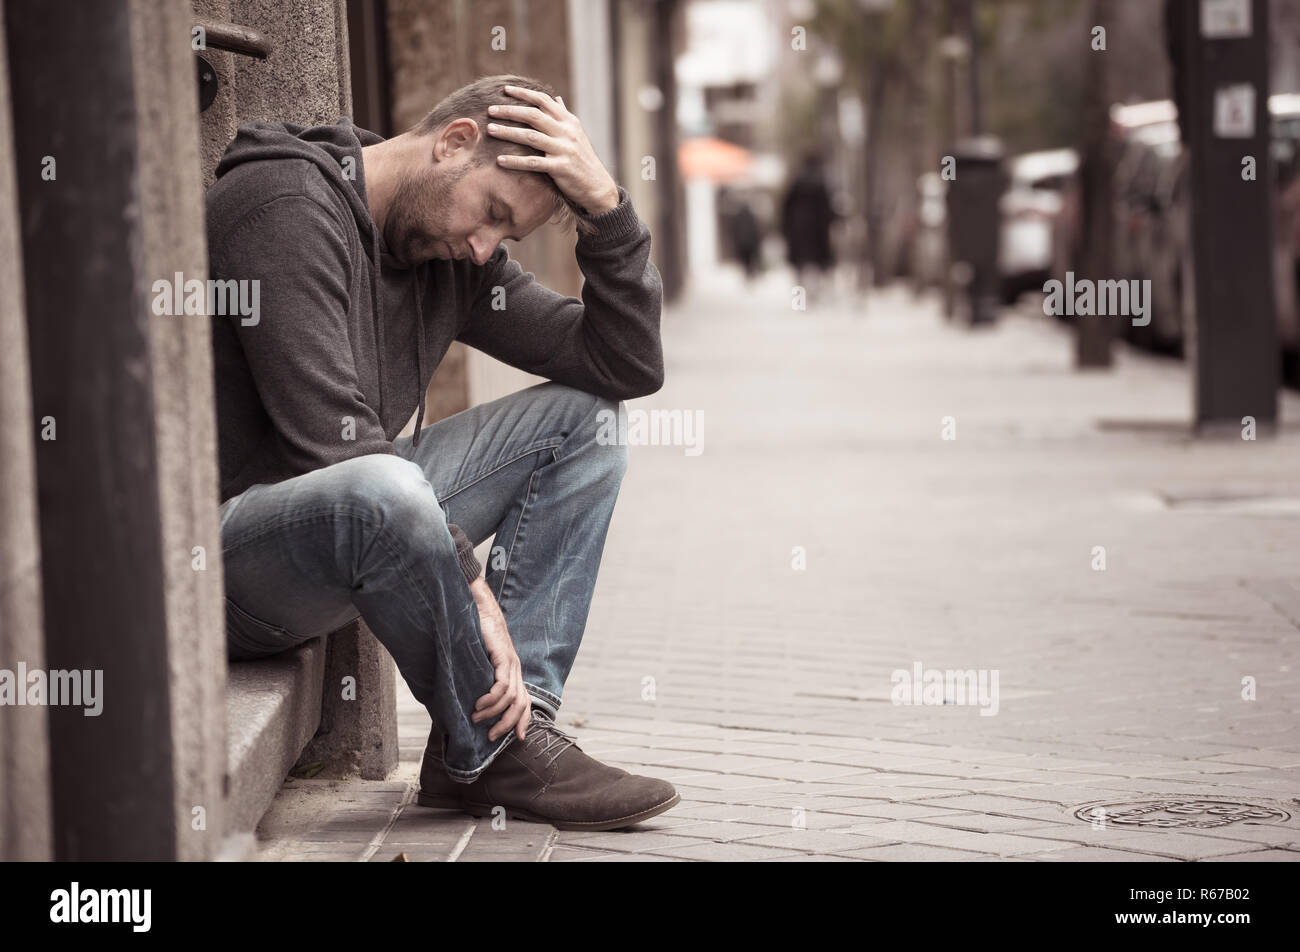 Young attractive man suffering from depression stress sitting alone and sad on the street feeling anxious and lonely in unemployment Mental health Dru - Stock Image